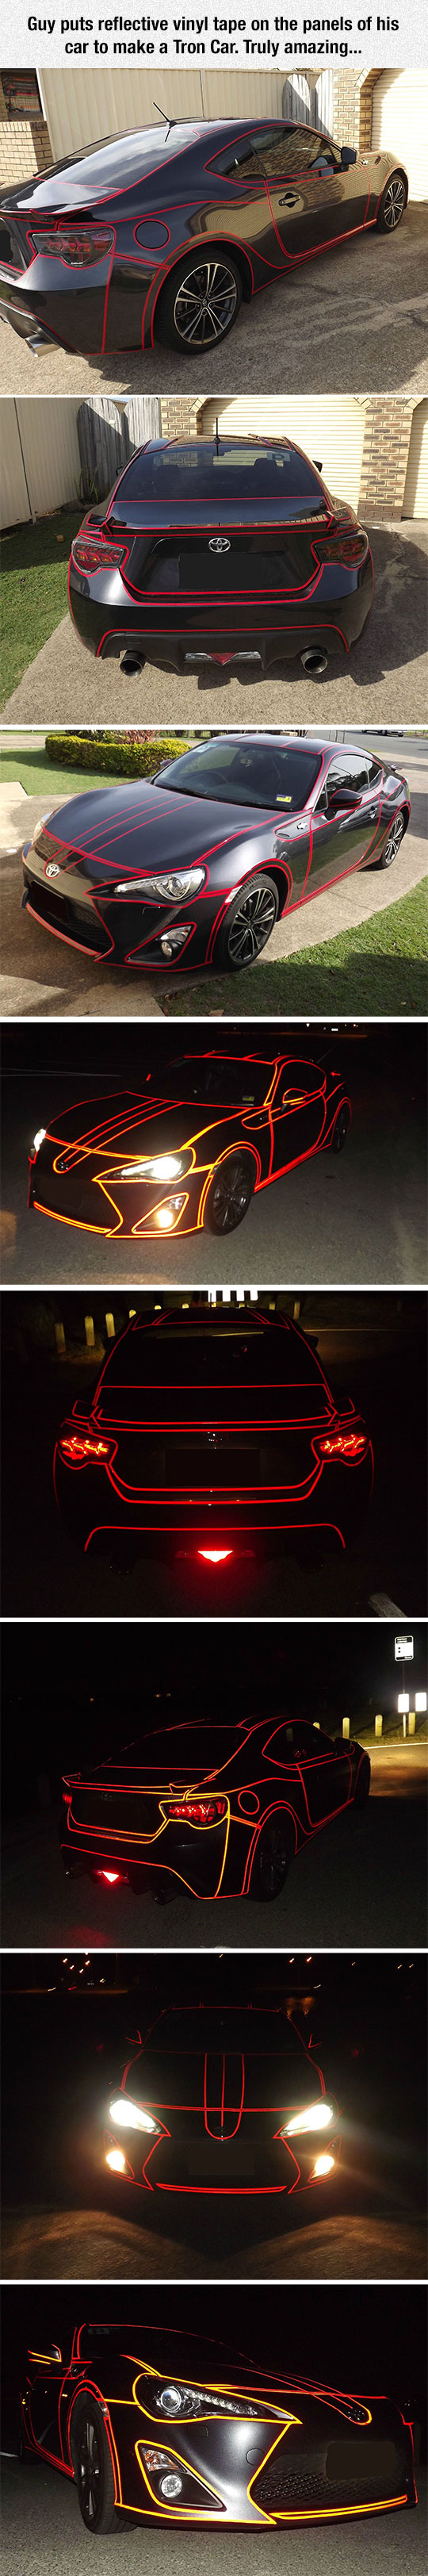 cool-car-Tron-reflective-vinyl